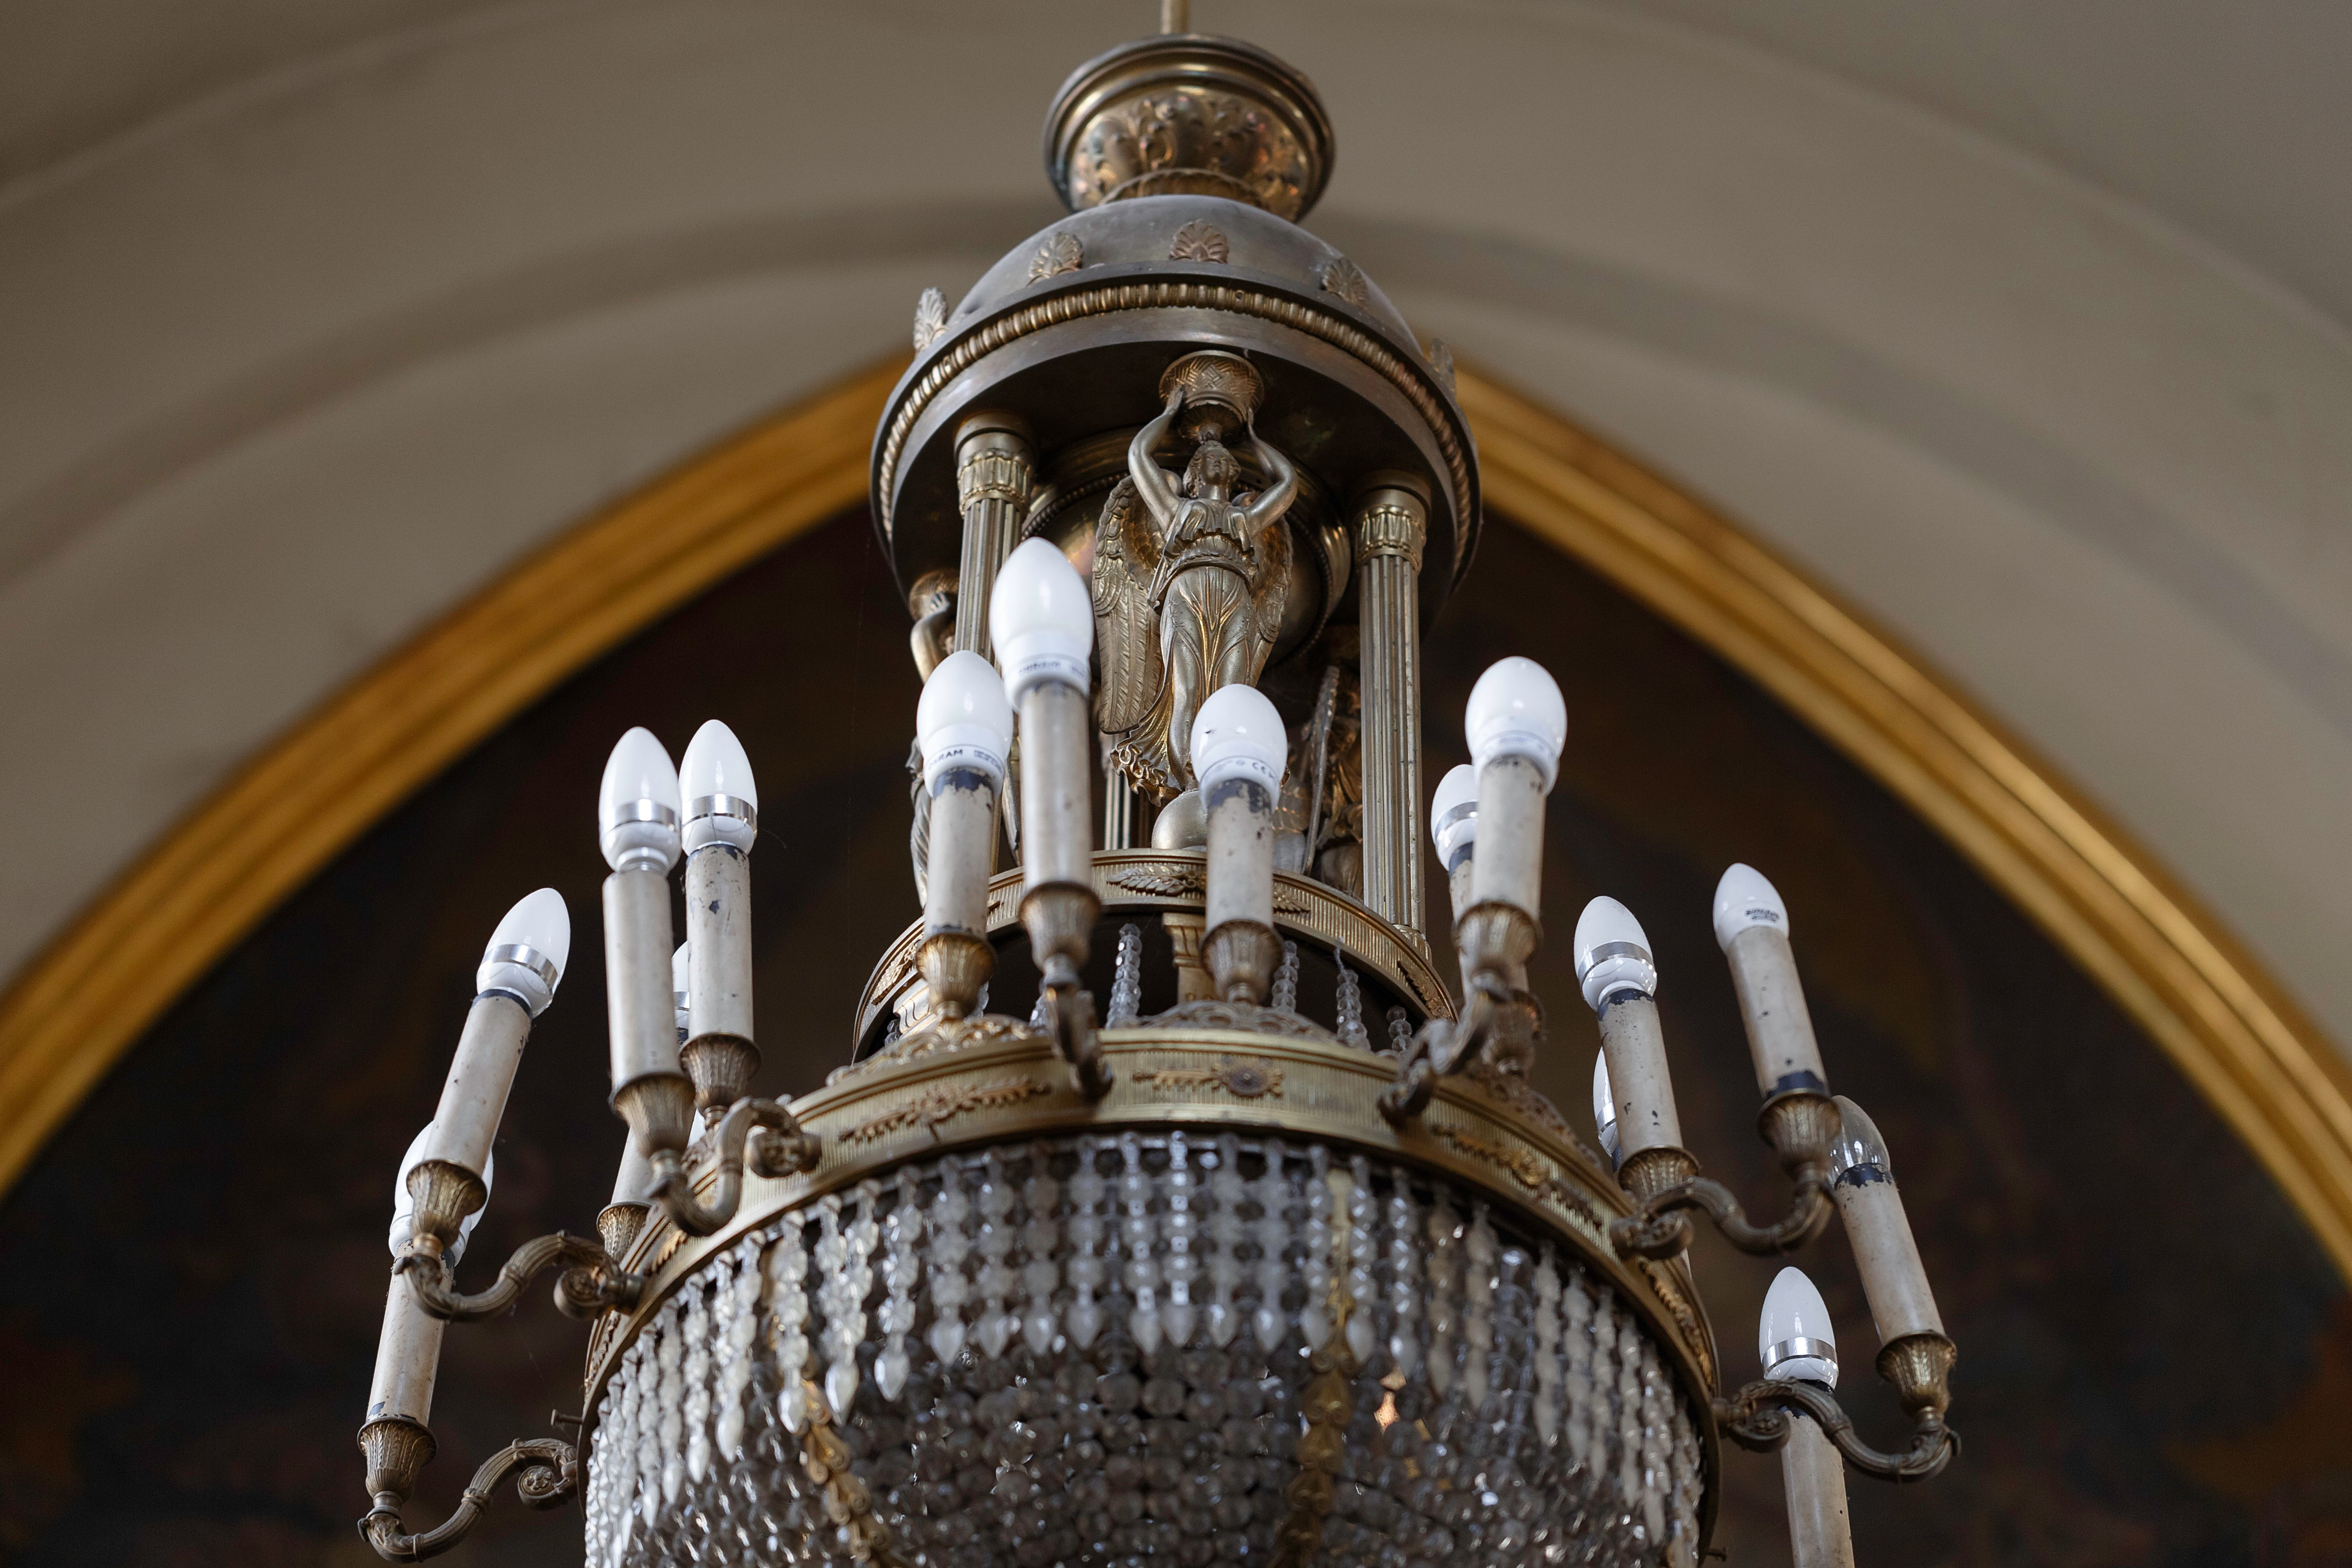 A fragment of the chandelier, 1925, the church of the Assumption of the Blessed Virgin Mary (Vytautas the Great) in Kaunas. Photo by Povilas Jarmala, 2019